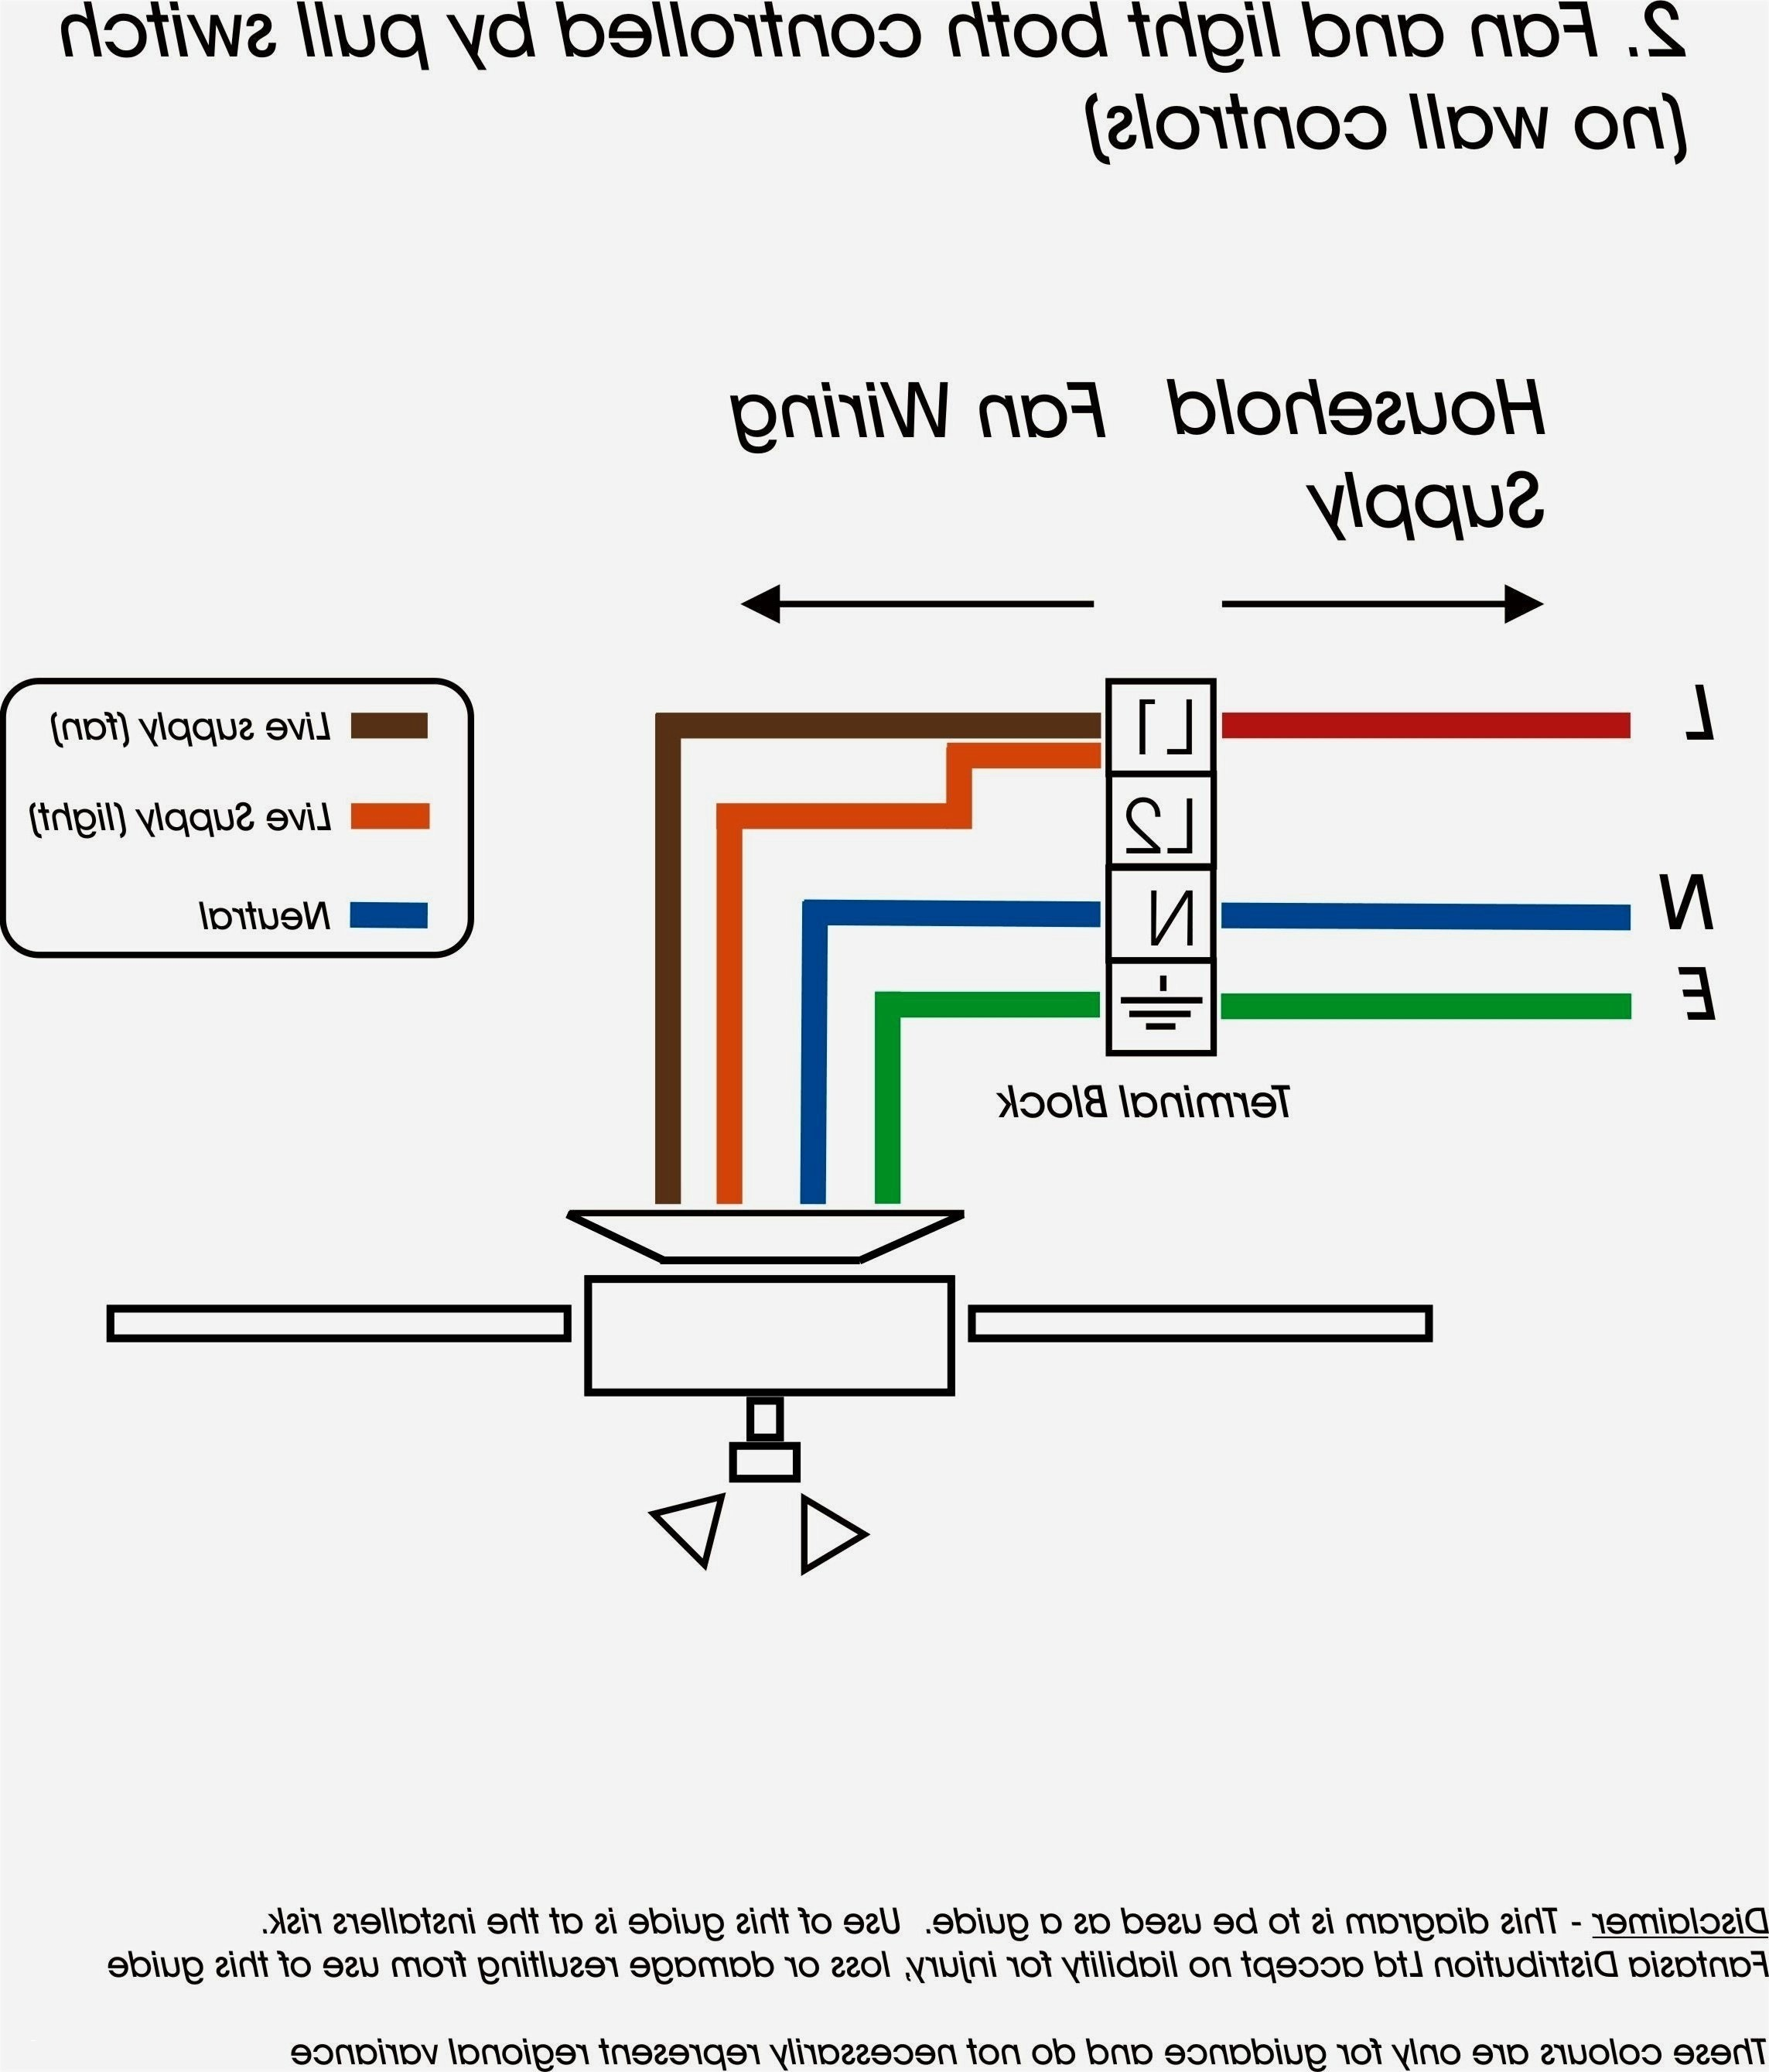 Wiring Diagram for Fluorescent Light Fresh Fog Light Wiring Diagram Inspirational How to Wire A Light